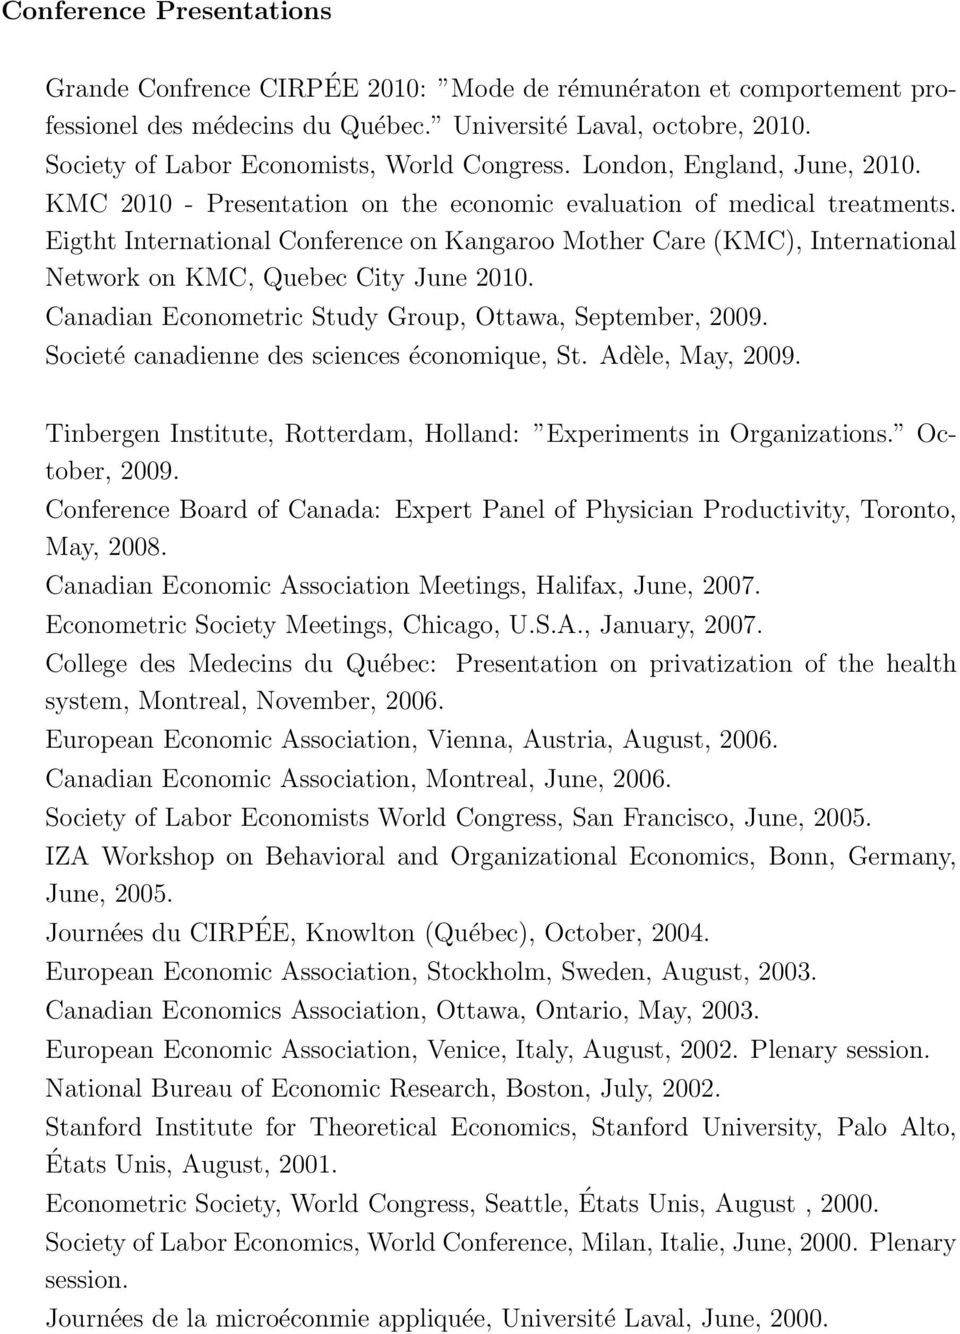 Eigtht International Conference on Kangaroo Mother Care (KMC), International Network on KMC, Quebec City June 2010. Canadian Econometric Study Group, Ottawa, September, 2009.